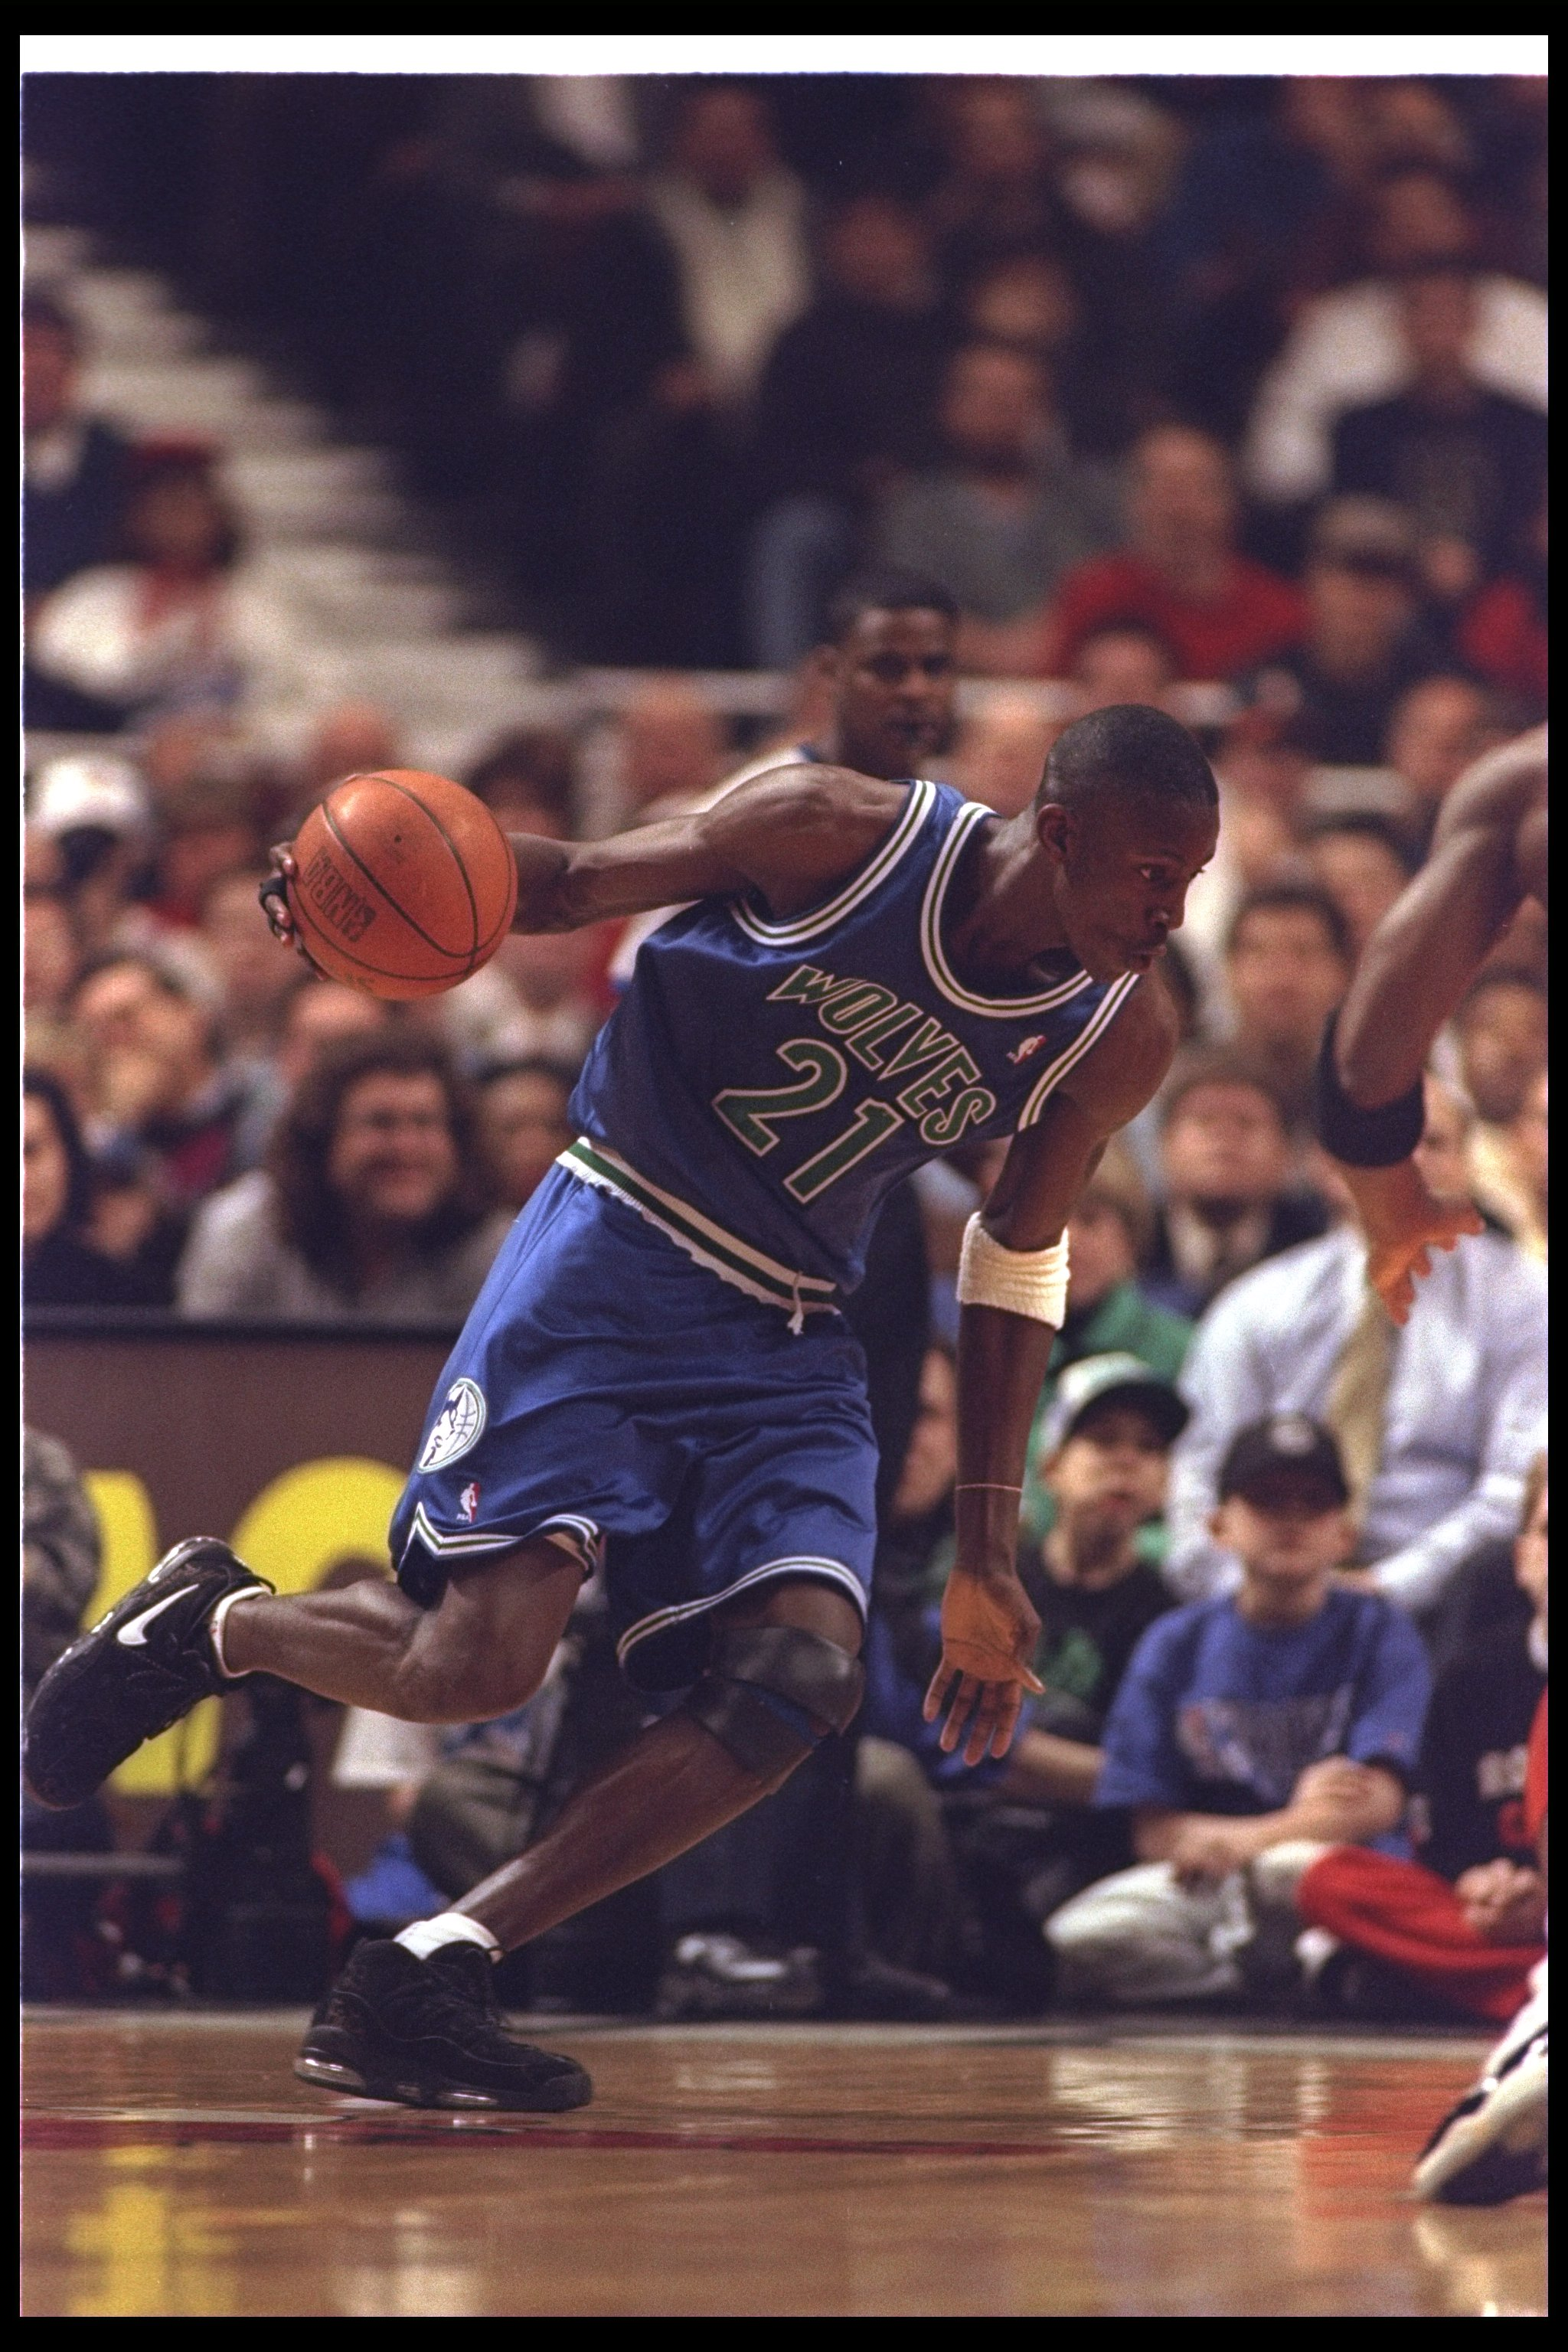 27 Feb 1996: Forward Kevin Garnett of the Minnesota Timberwolves moves the ball during a game against the Chicago Bulls at the United Center in Chicago, Illinois. The Bulls won the game, 120-99.